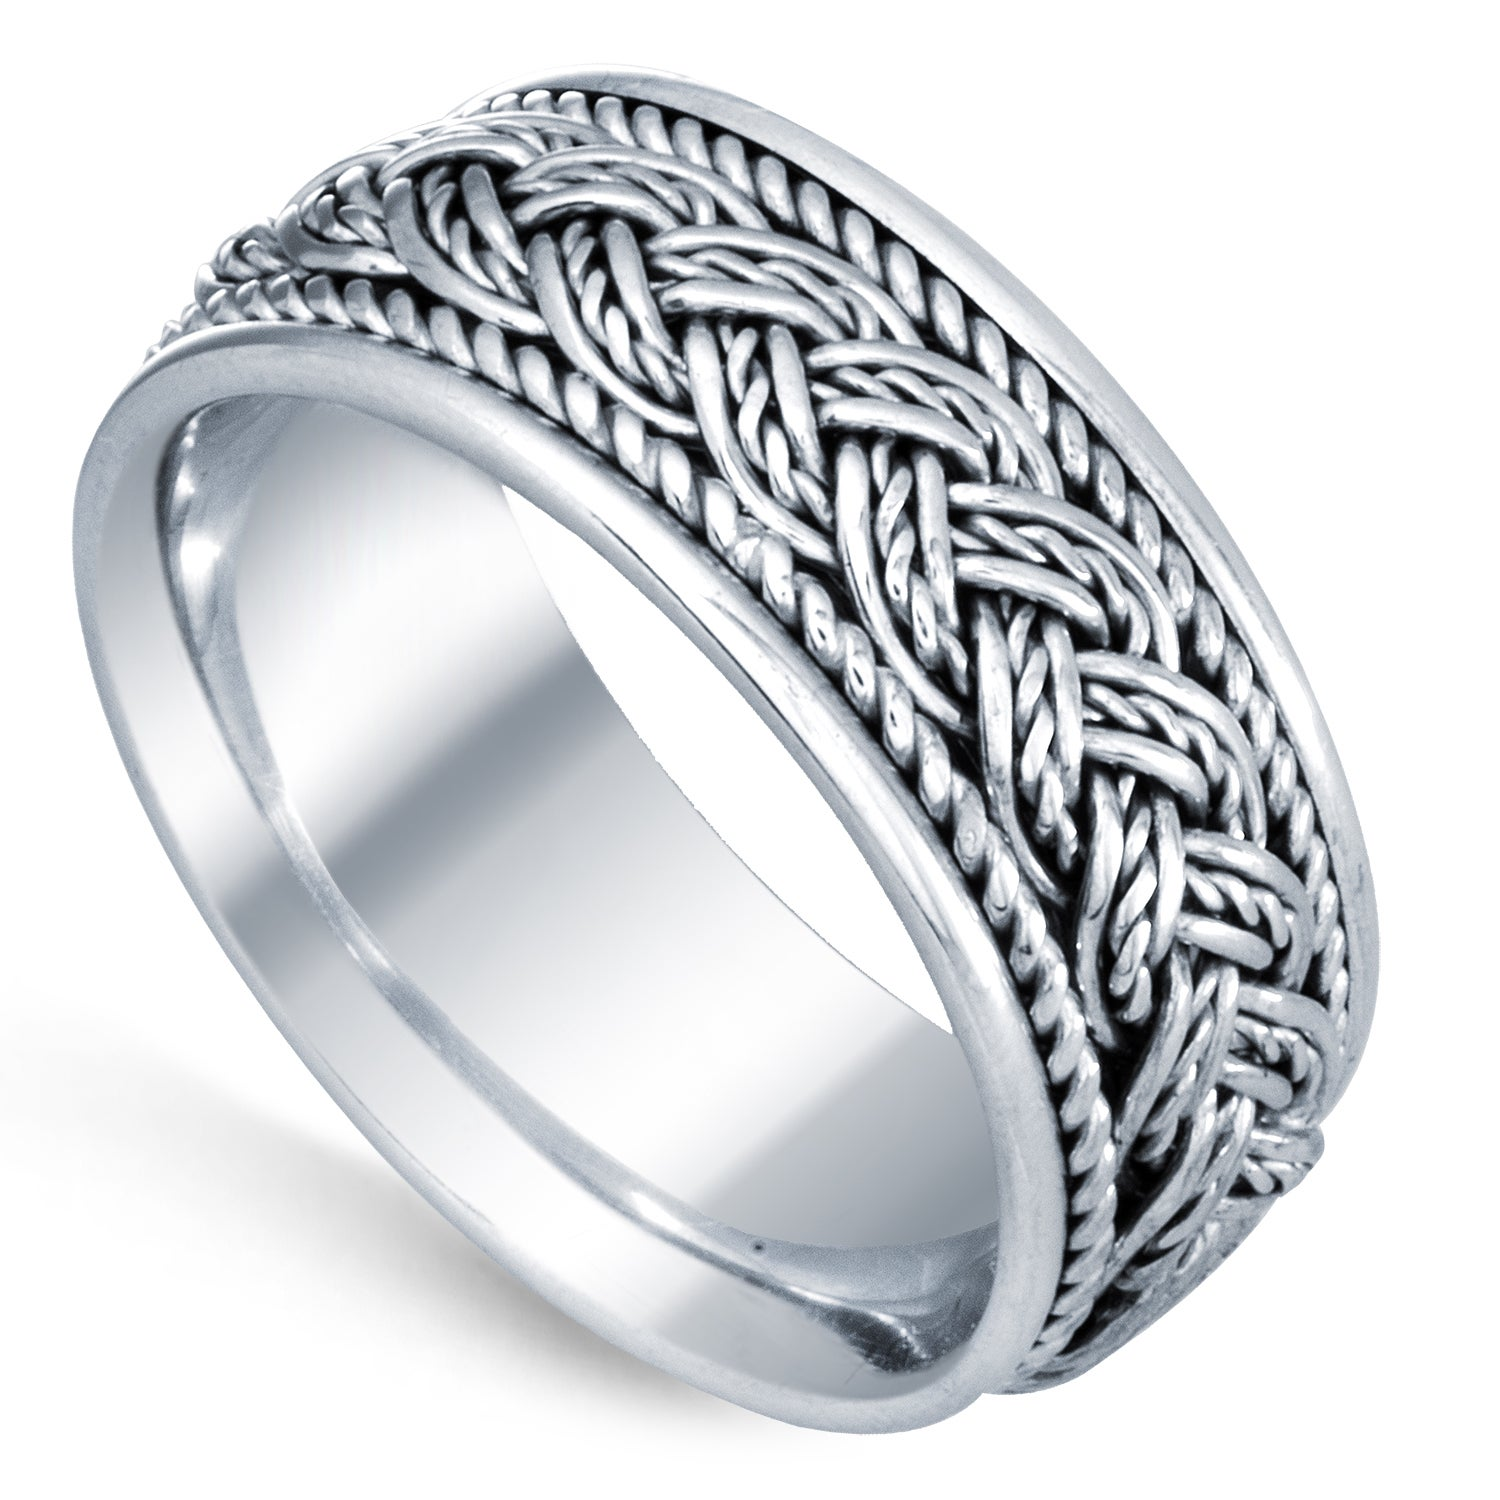 68b642a12de Shop 14k White Gold Handmade Braided Comfort Fit Women s Wedding Bands -  Free Shipping Today - Overstock - 8379066